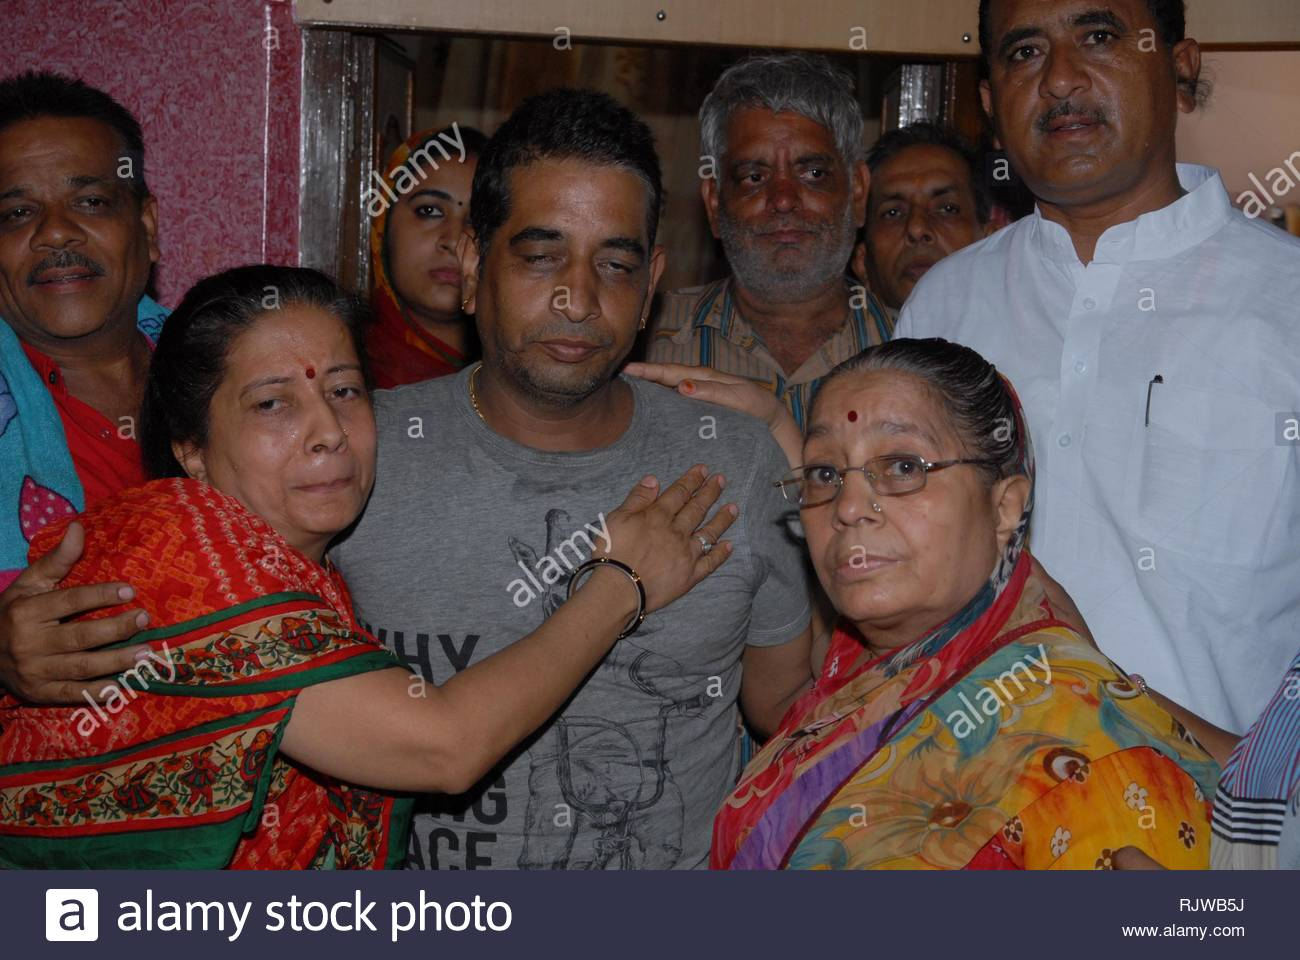 Pilgrim Mahesh Arora who was rescued and evacuated from flood-ravaged Uttarakhand, meets his relatives on arrival at Jodhpur, Rajasthan, India on June 24, 2013. Six of his relatives perished in the floods and landslides. (Sunil Verma) - Stock Image